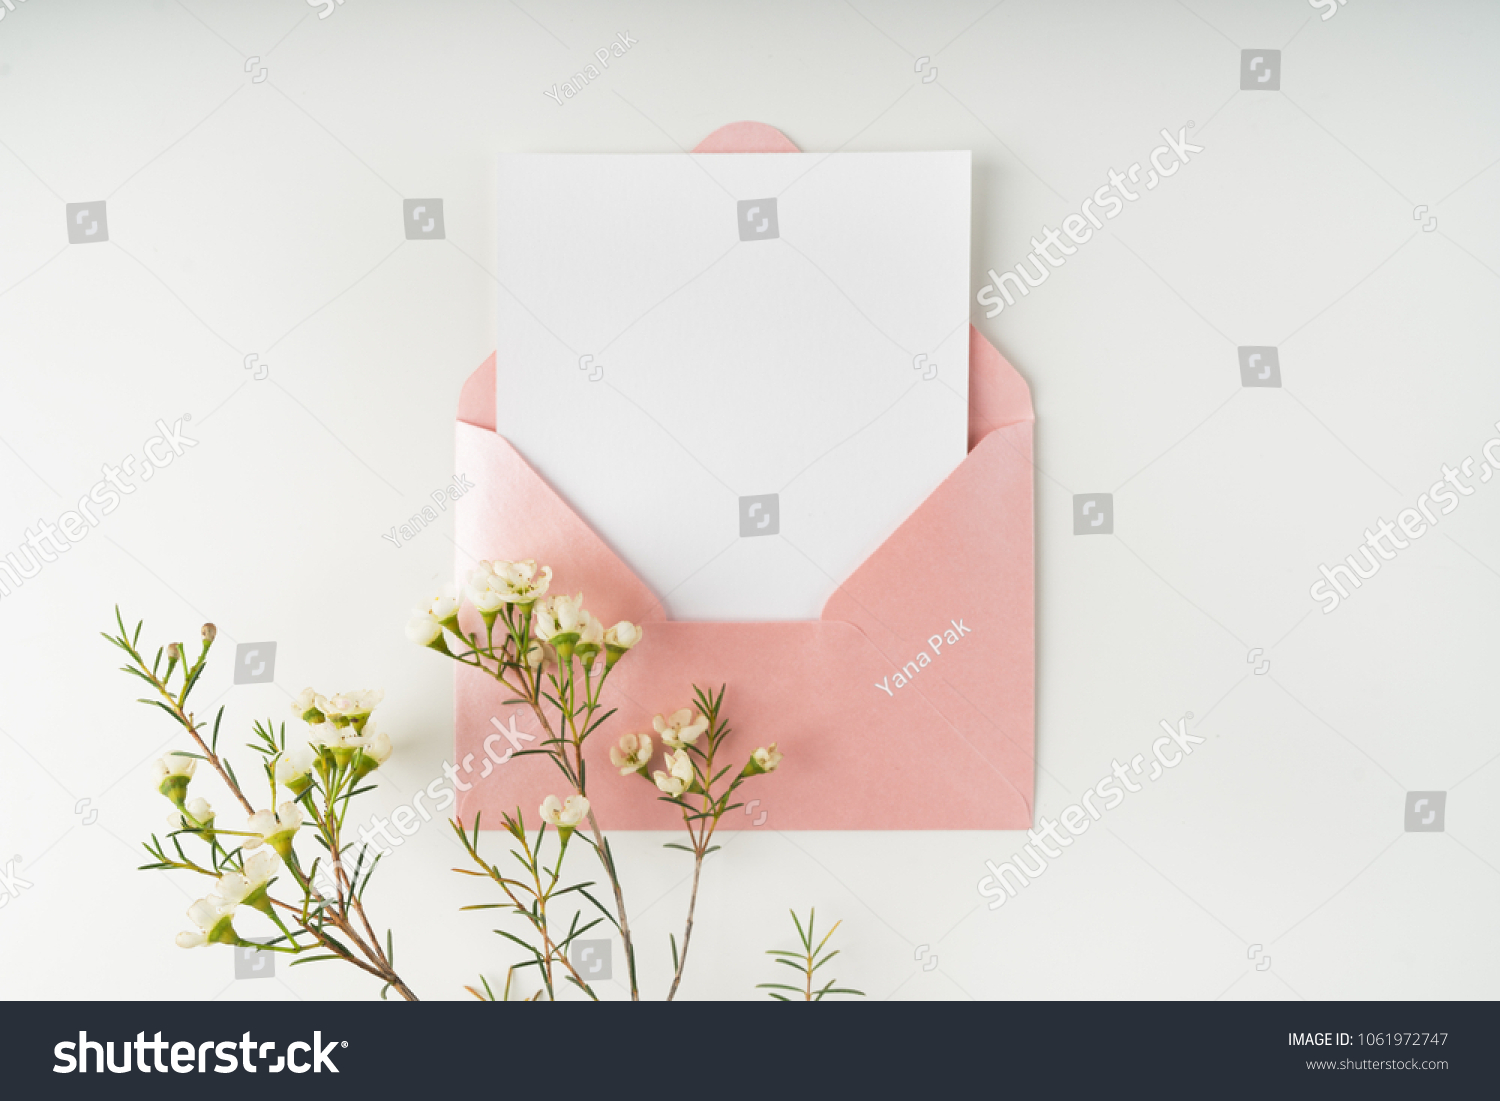 Minimal composition with a pink envelope, white blank card and a wax flower on a white background. Mockup with envelope and blank card. Flat lay. Top view. #1061972747